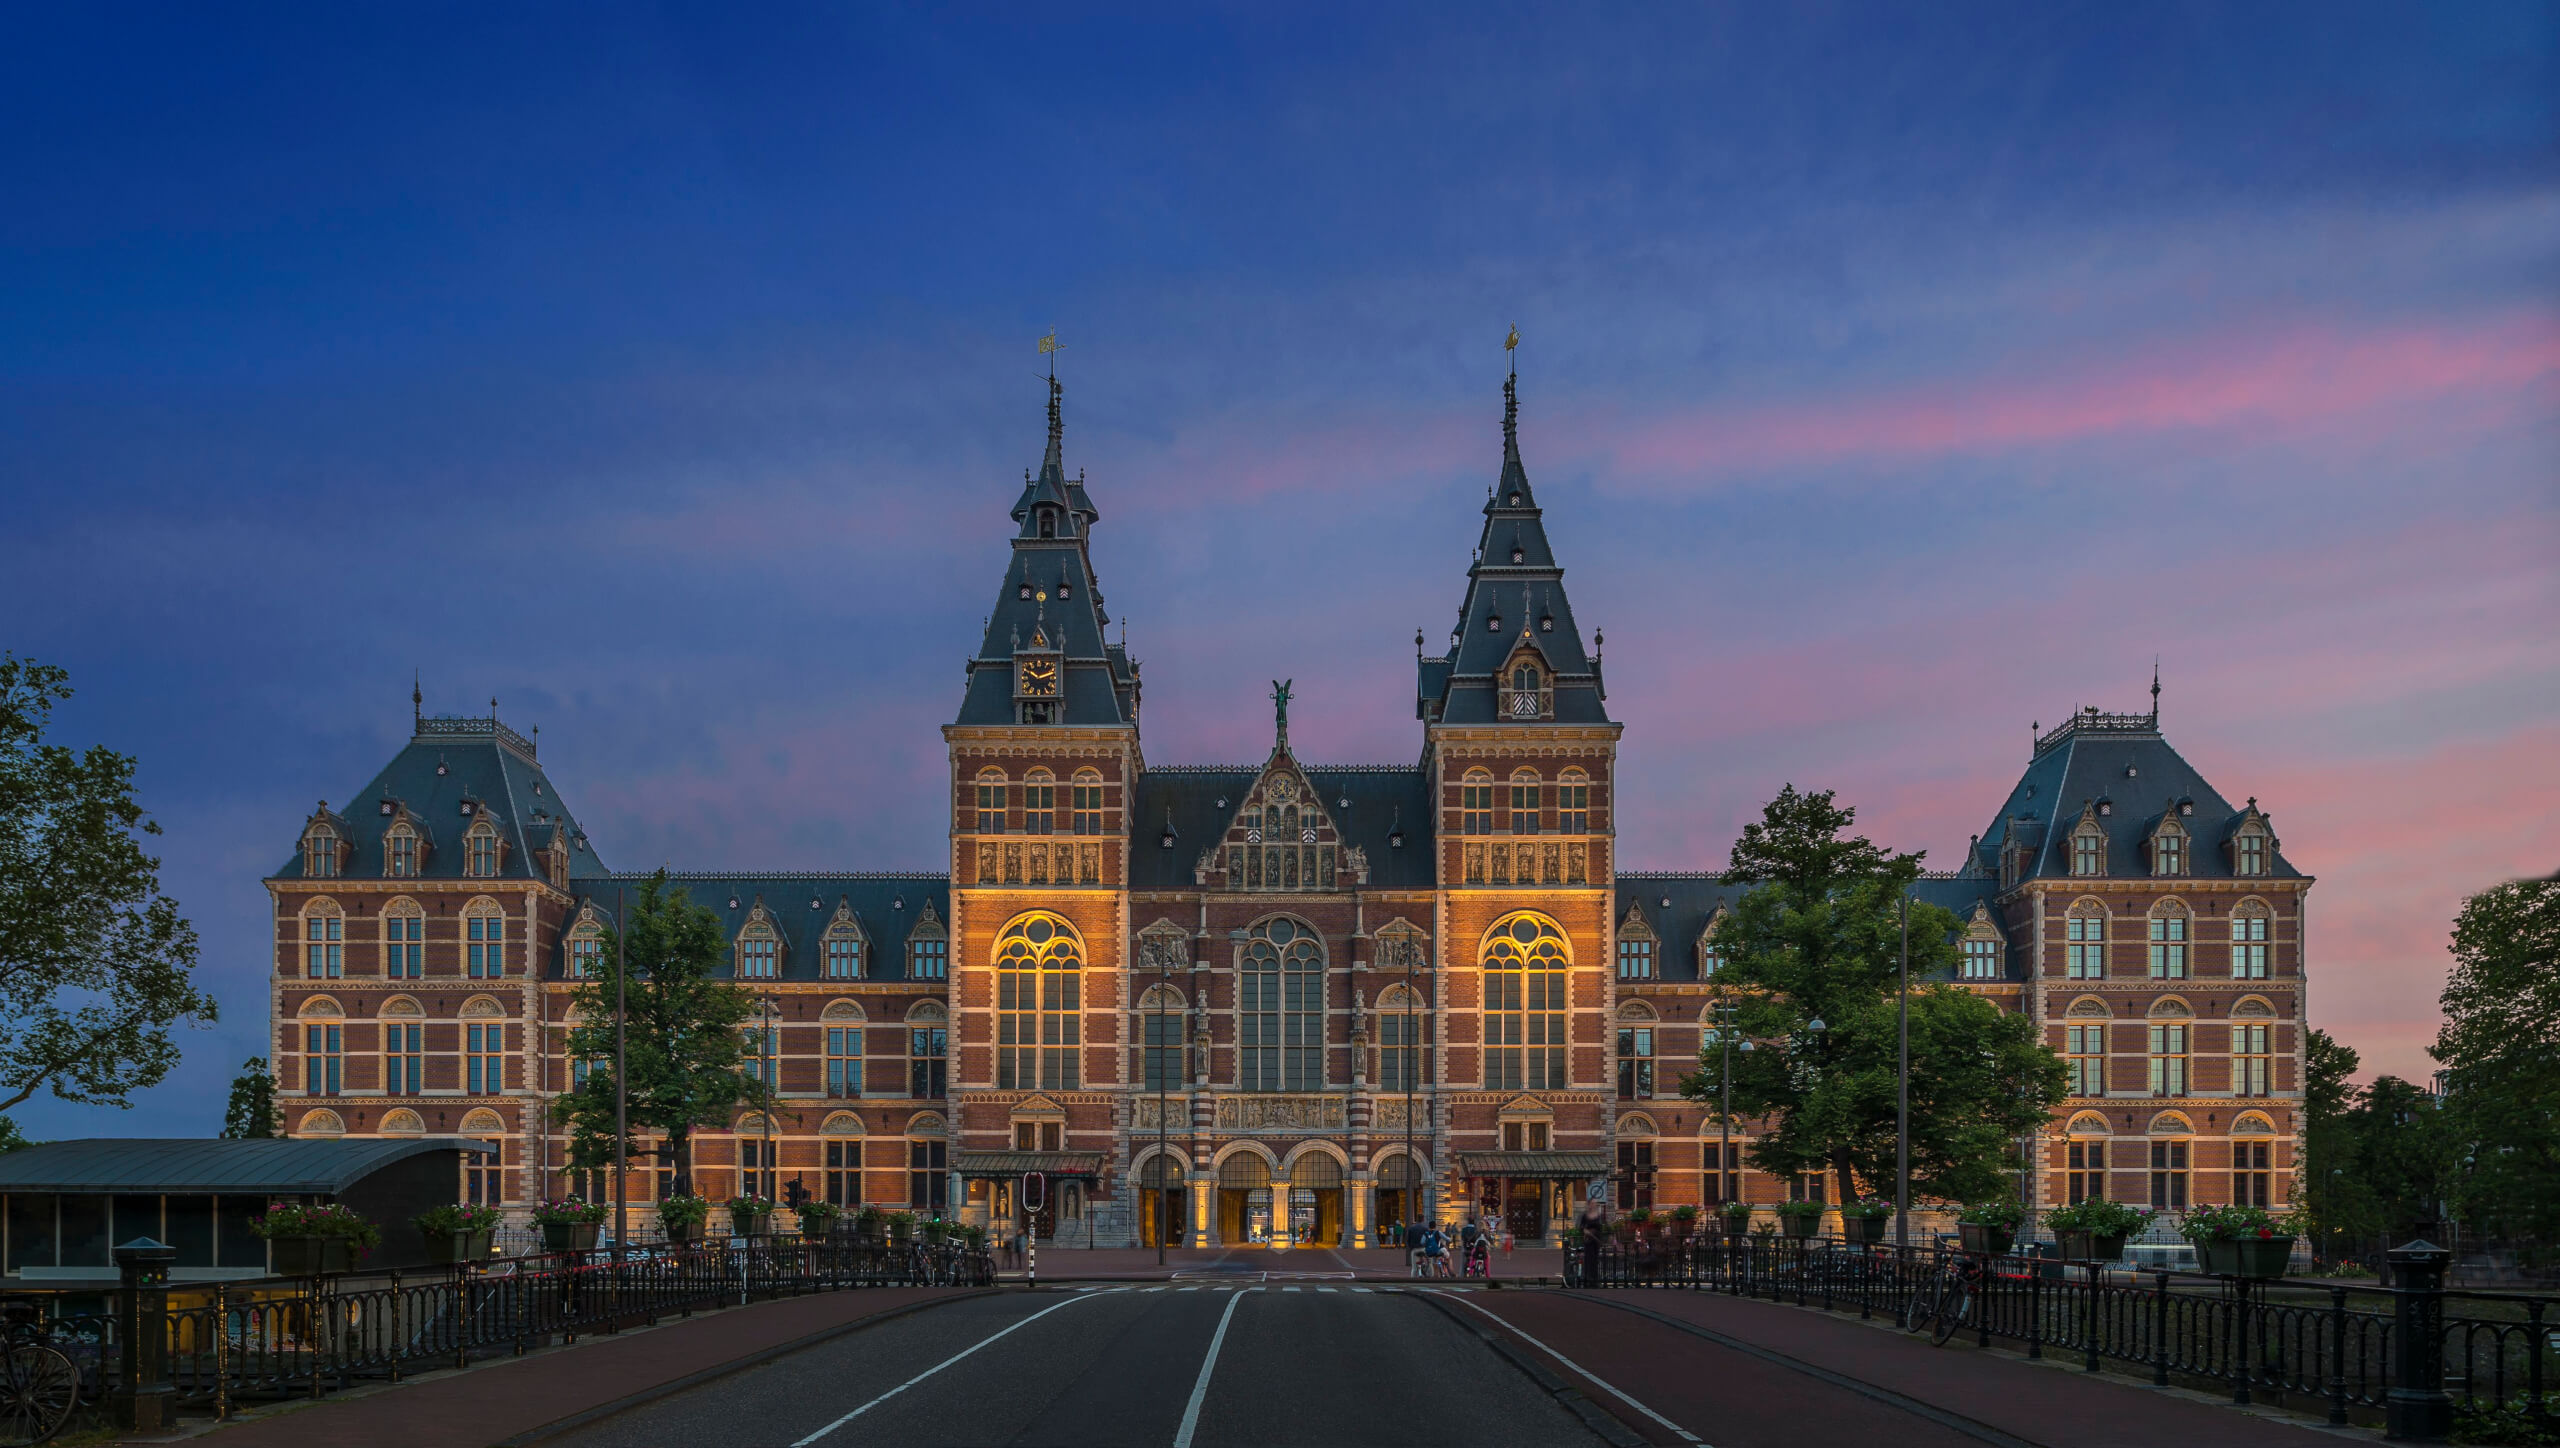 rijksmuseum, rembrandt amsterdam, amsterdam, things to do in amsterdam, amsterdam things to do, amsterdam attractions, rembrandt, the night watch rembrandt,